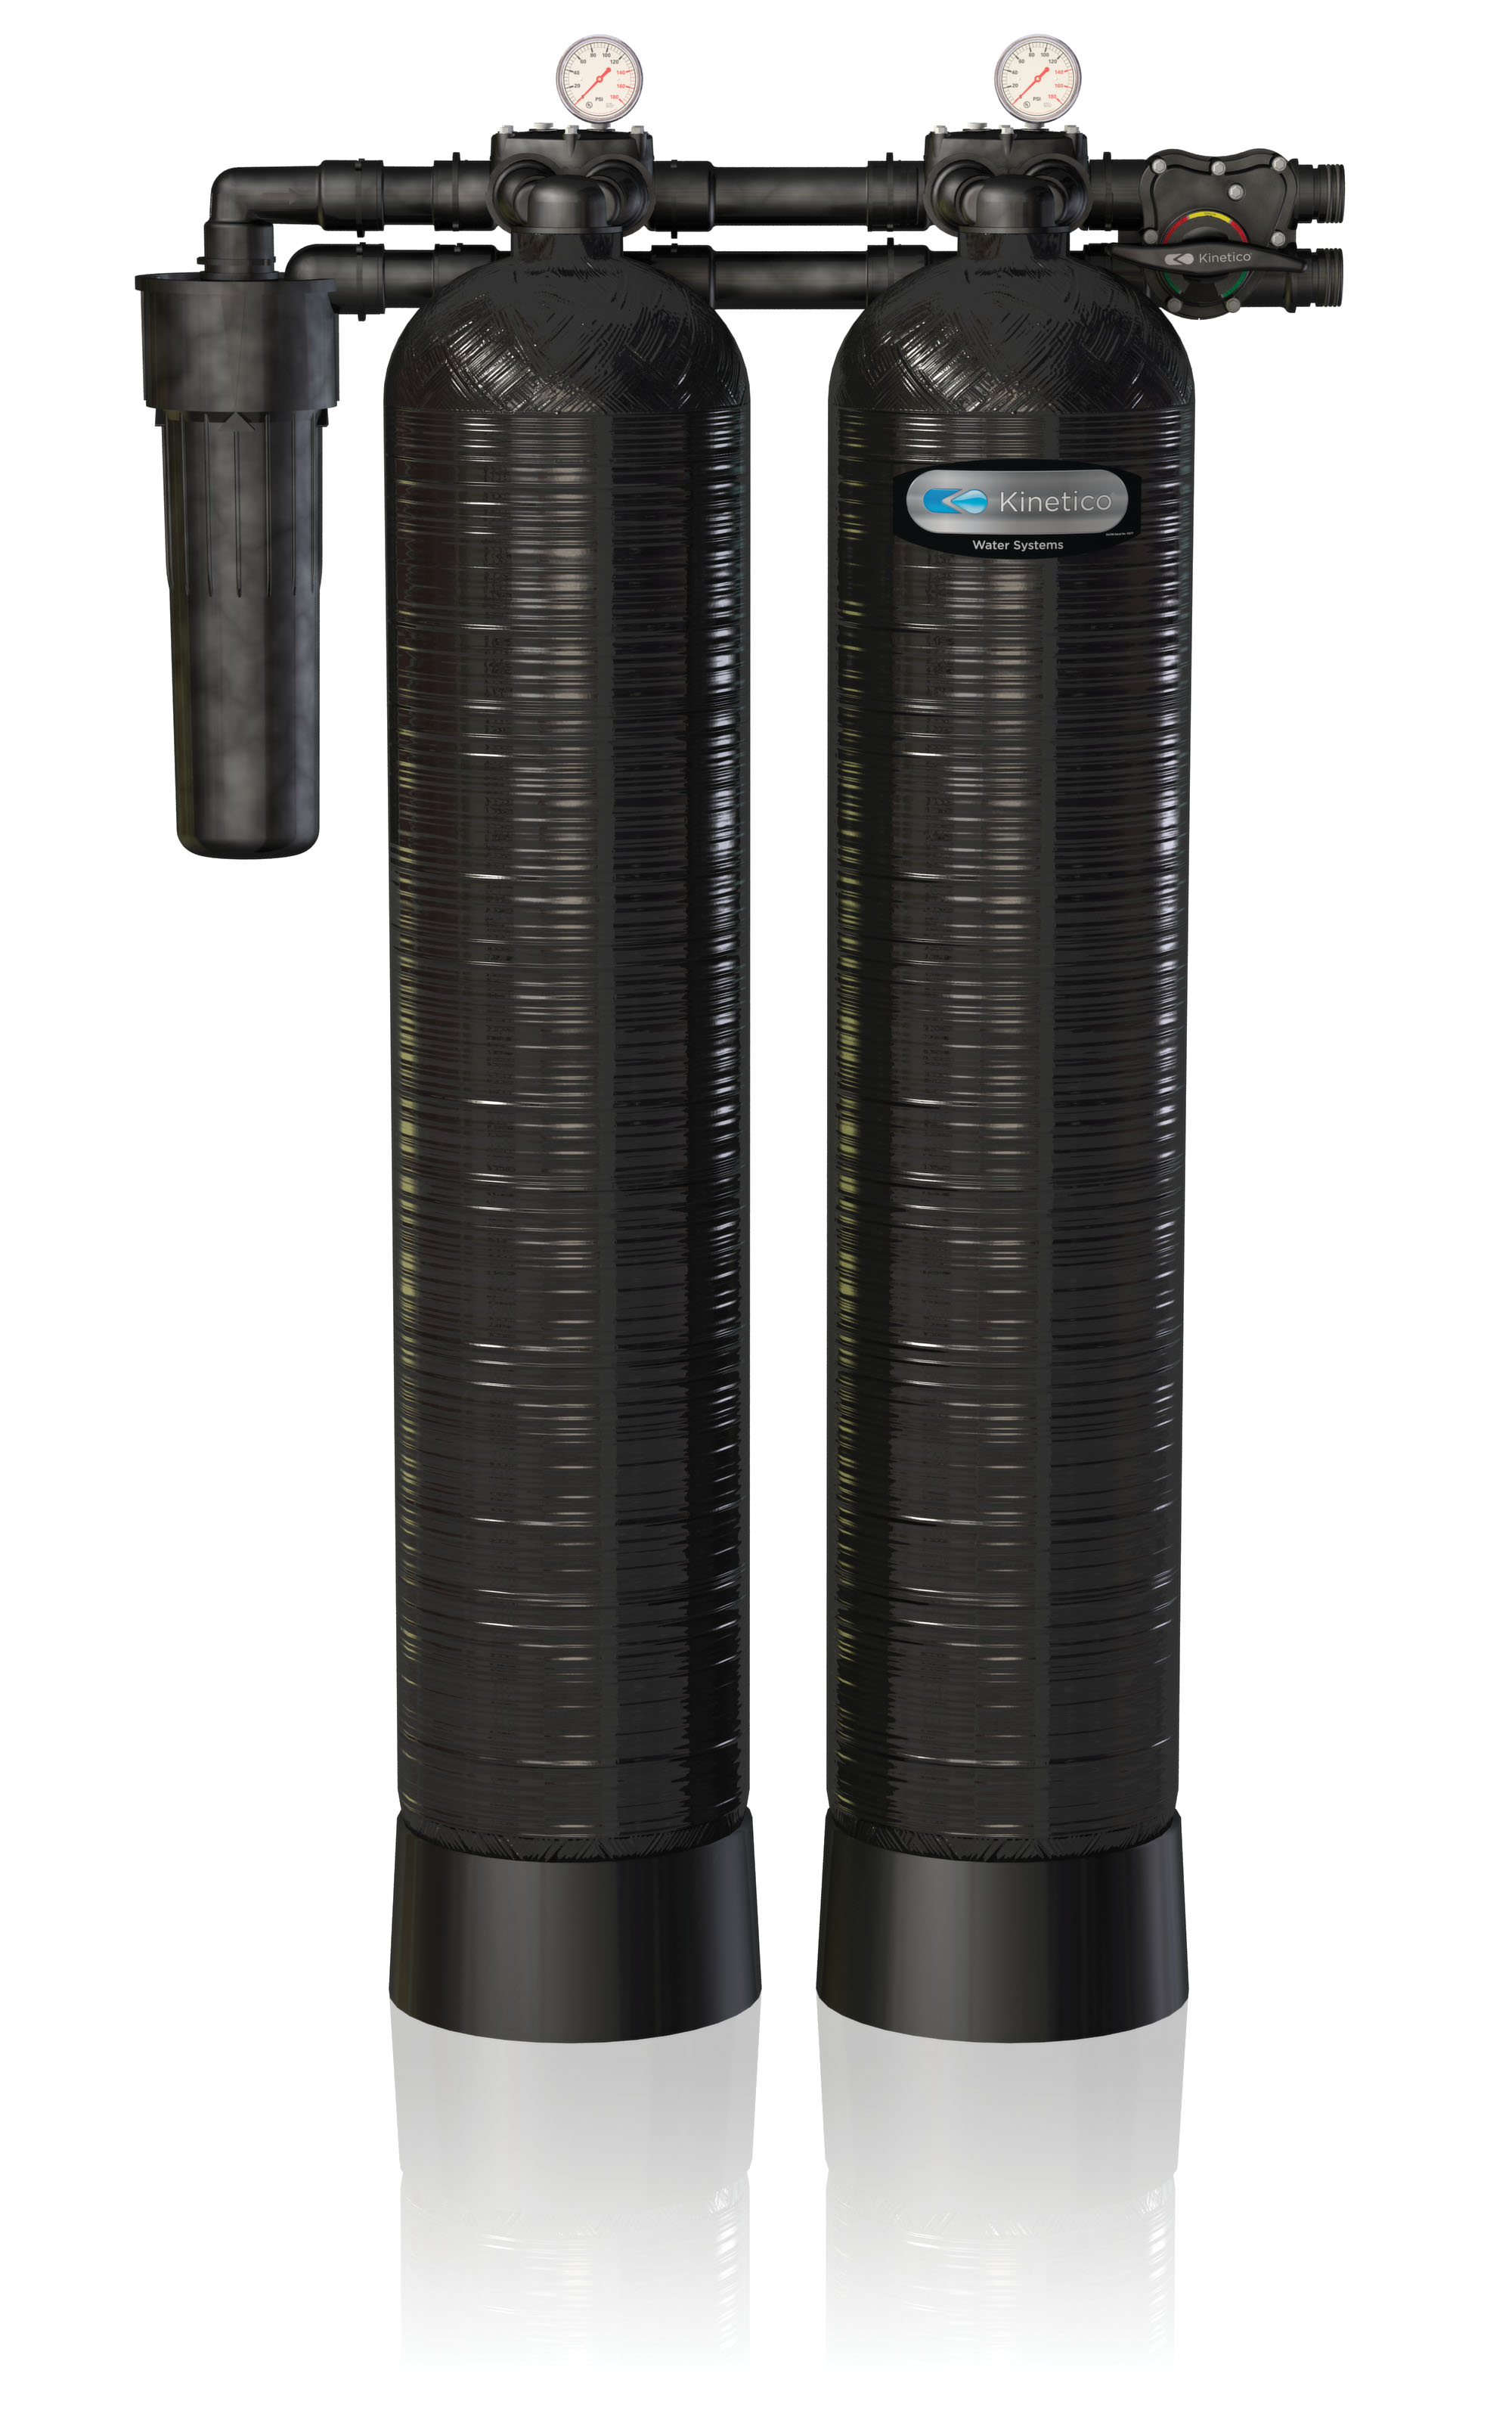 Kinetico Arsenic Guard Water Filter